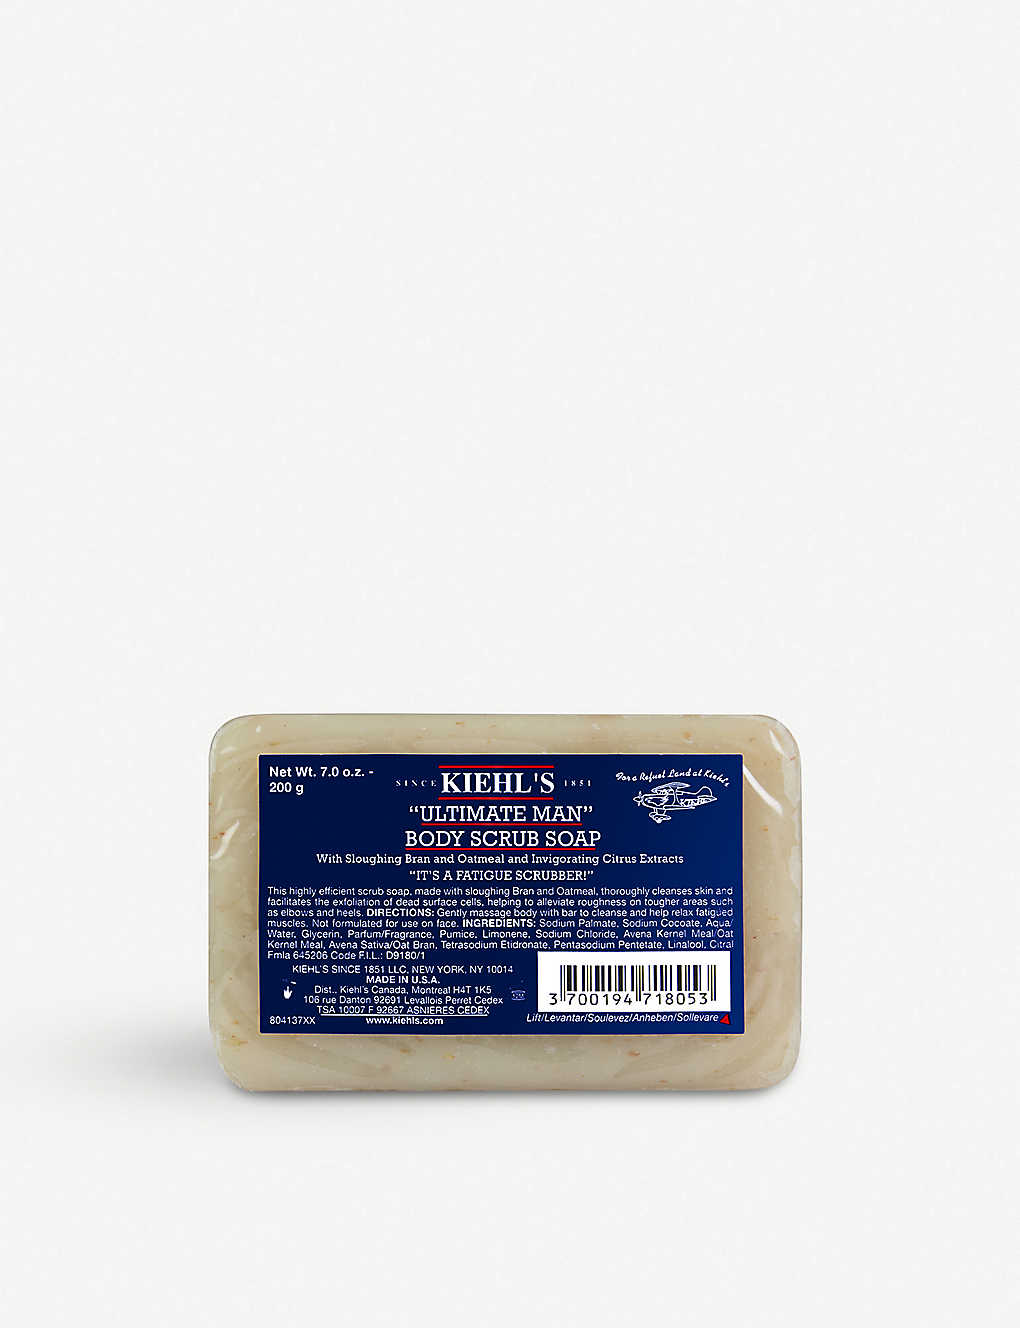 KIEHL'S: Ultimate Man Body Scrub Soap 200g